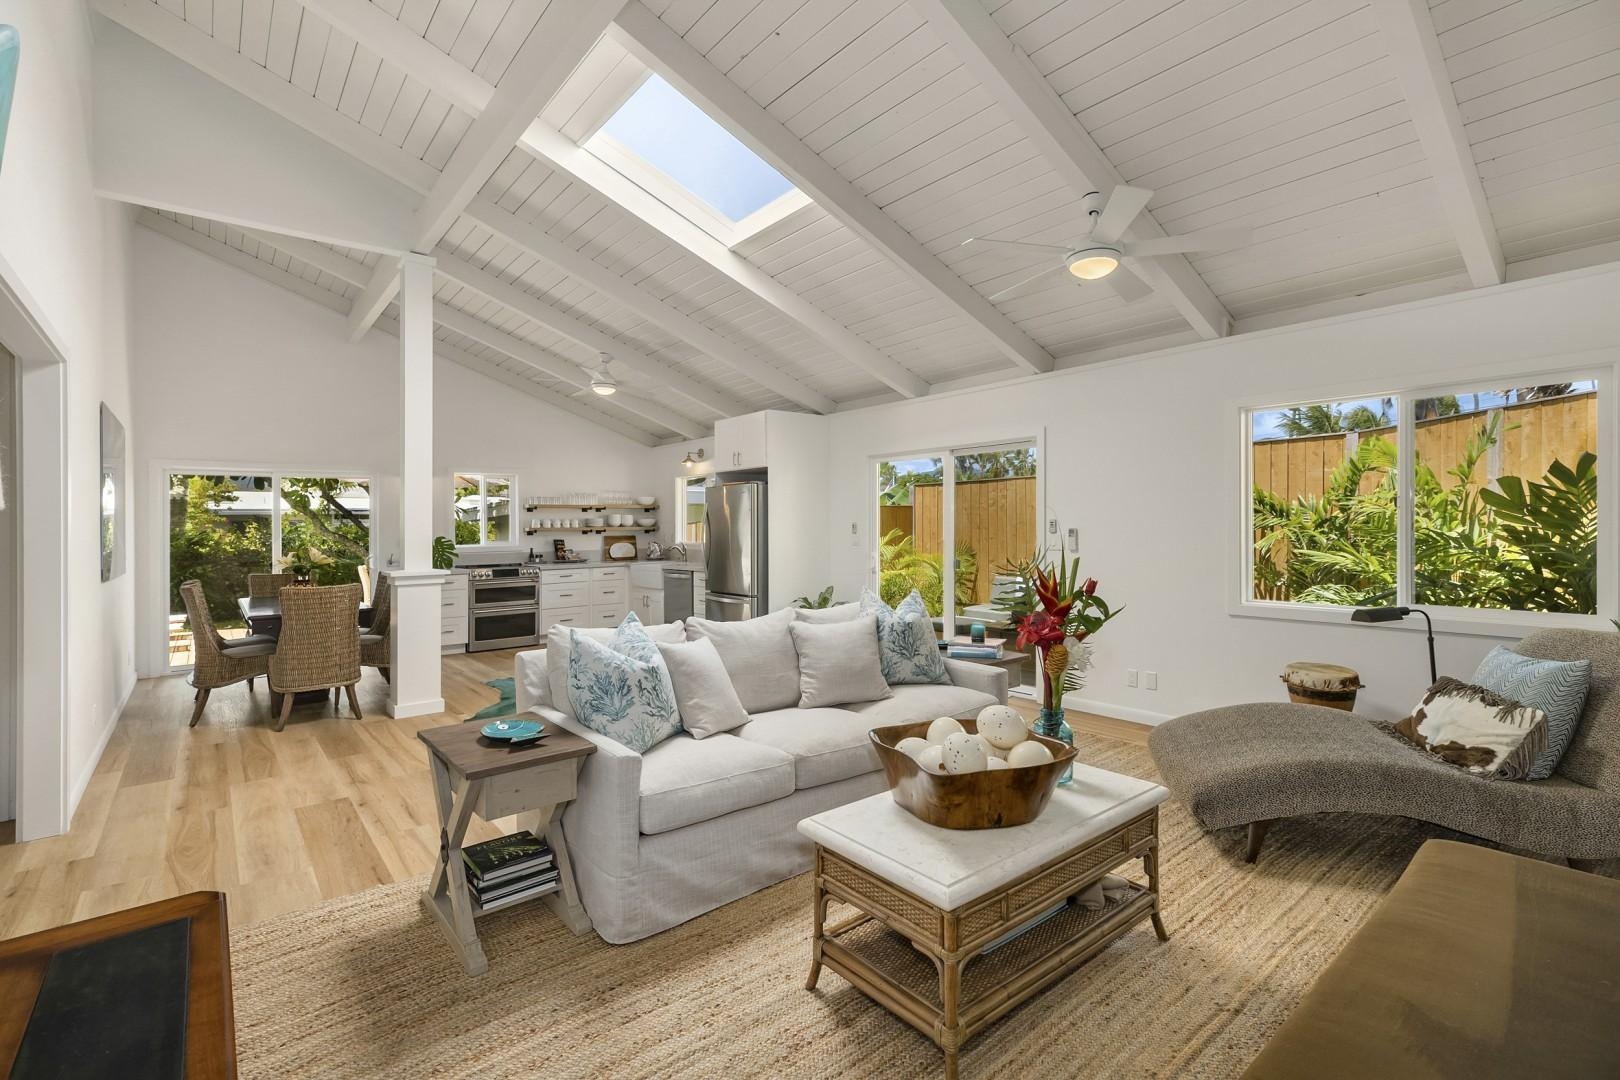 Open floor plan with Vaulted Ceilings and Skylight